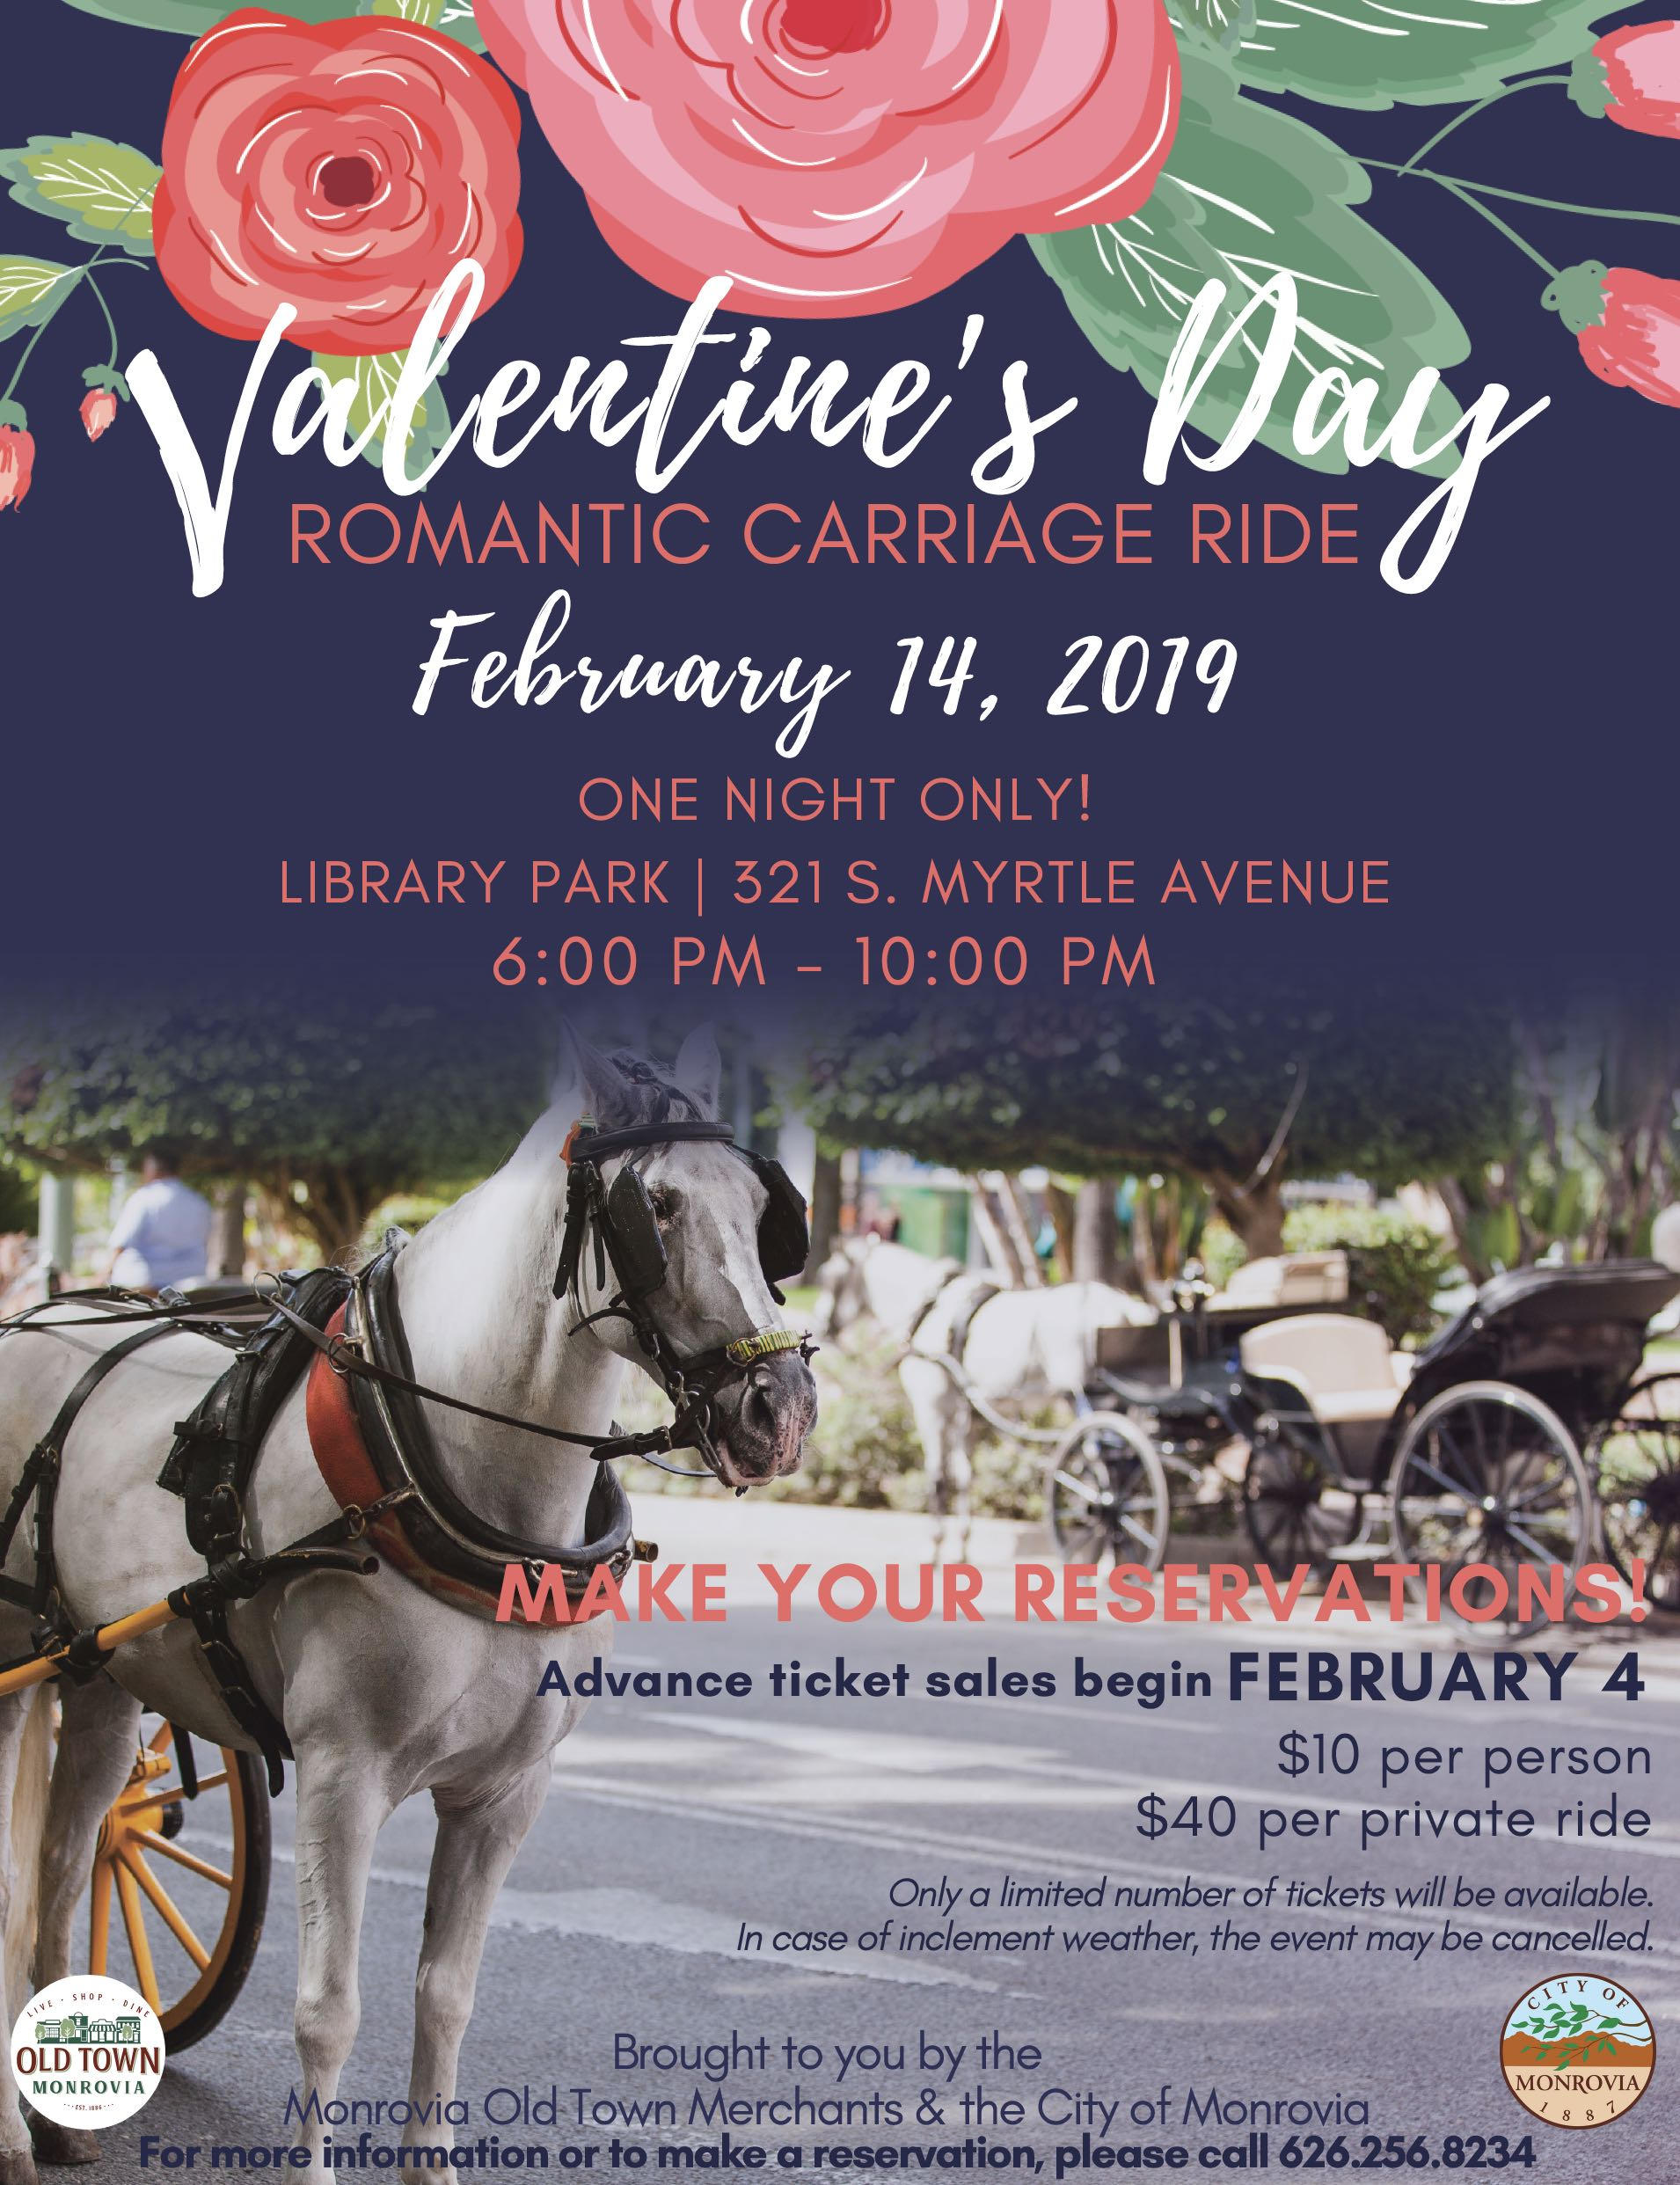 2019 Valentine's Day Carriage Rides